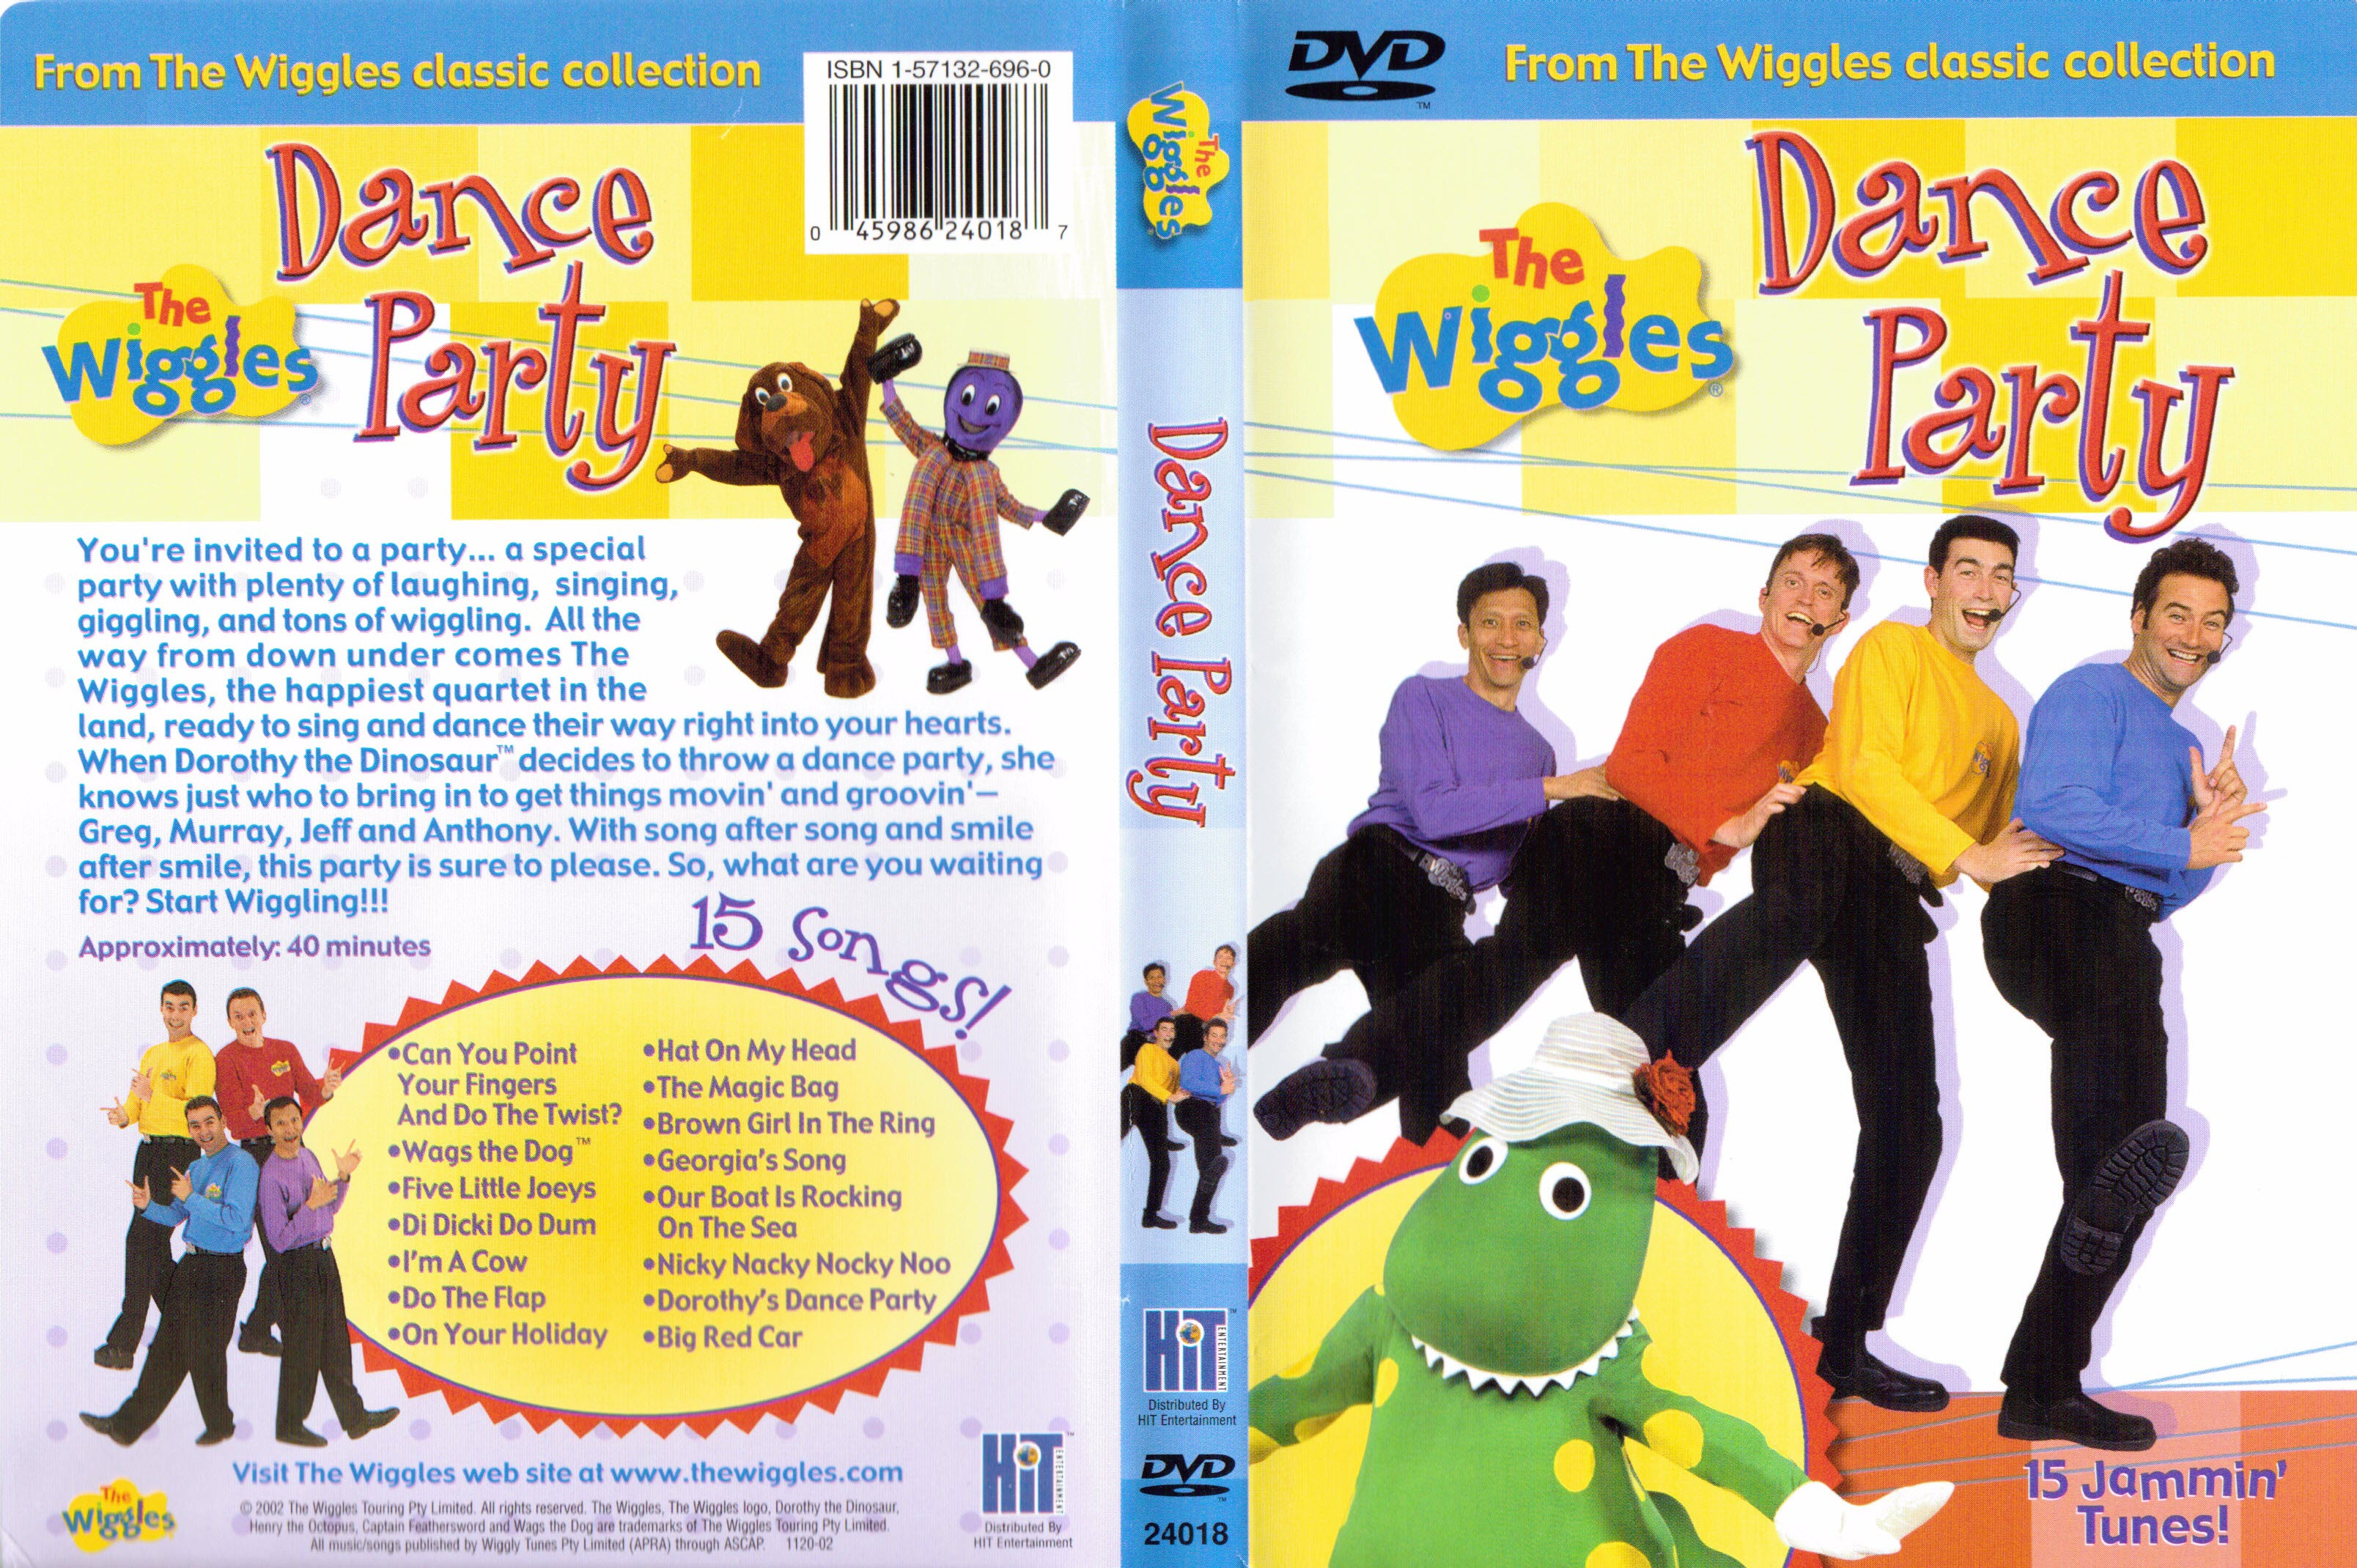 The Wiggles - Dance Party cover